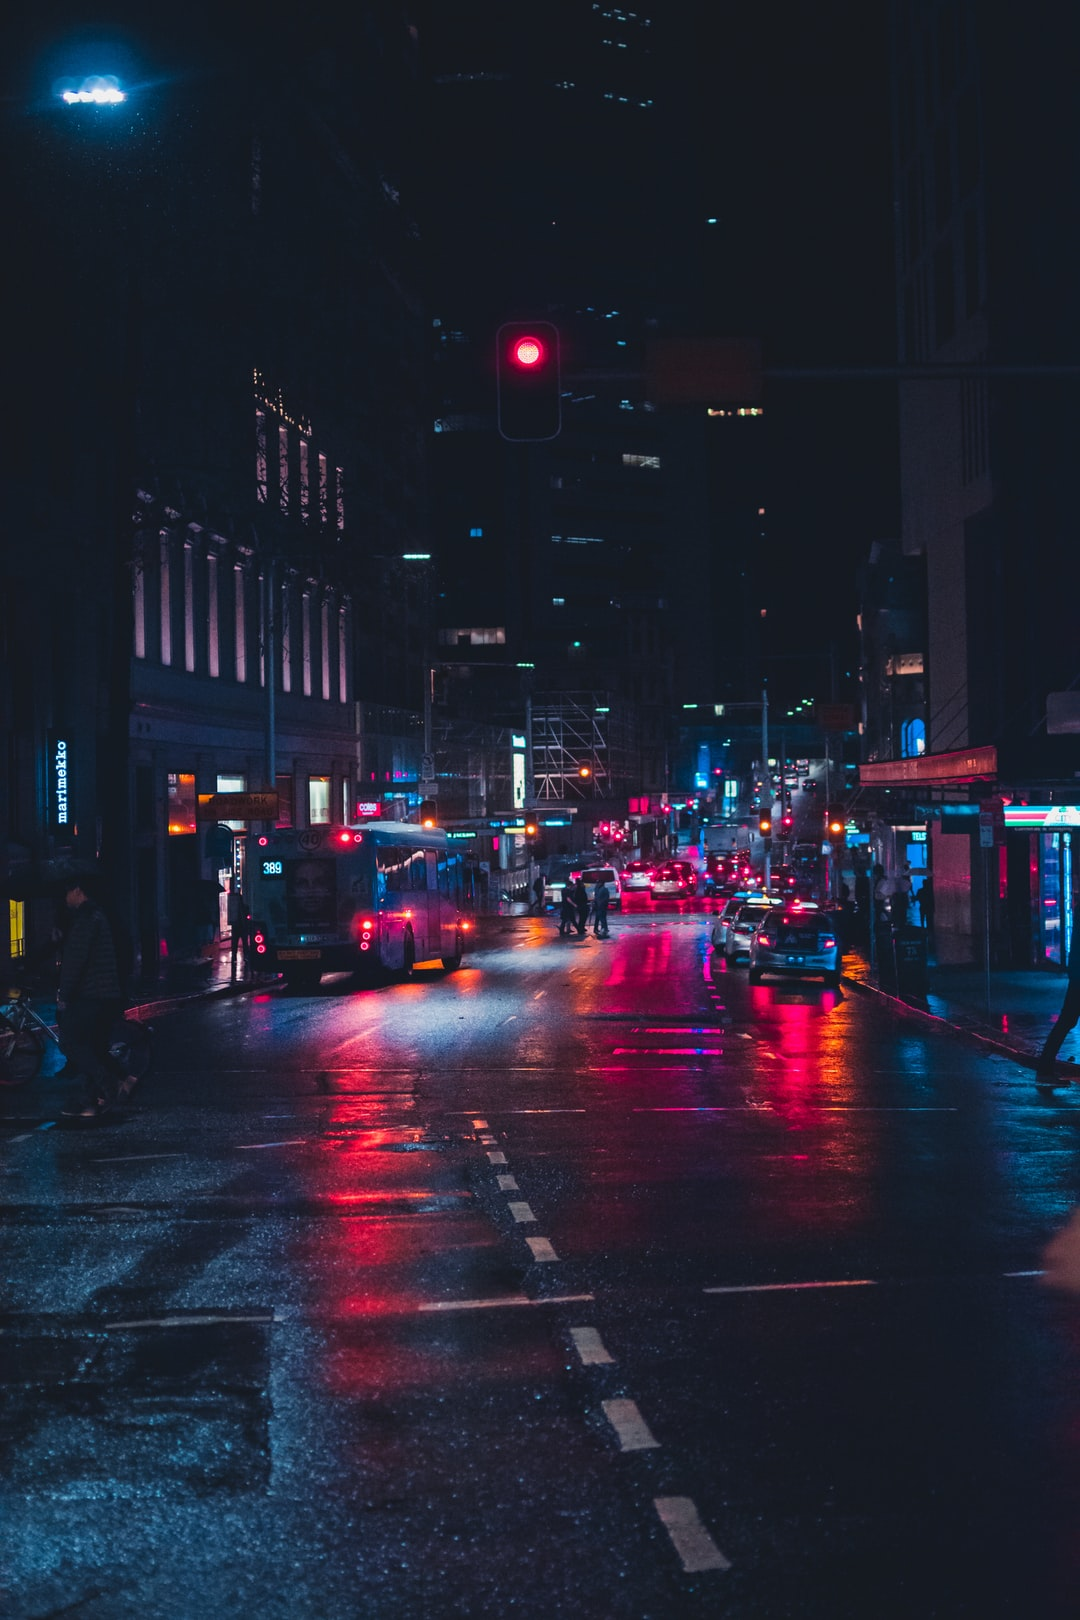 I was on my way to vivid when it started raining and as I crossed this street I noticed how it has its own vibe with all the lights and reflection from the wet asphalt.